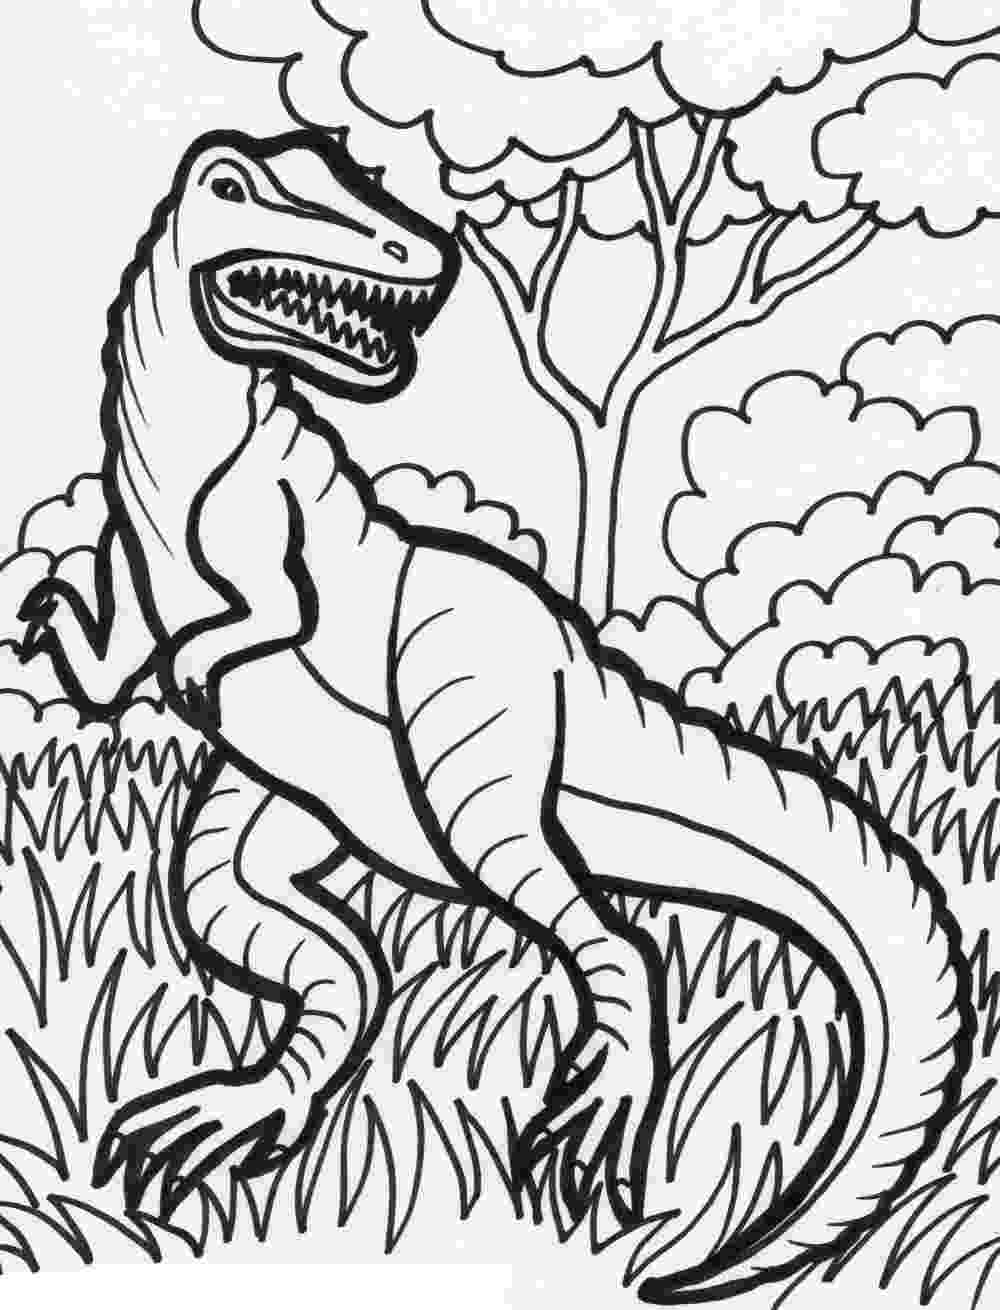 dinosaurs colouring pictures to print printable dinosaur coloring pages for kids cool2bkids print dinosaurs to pictures colouring